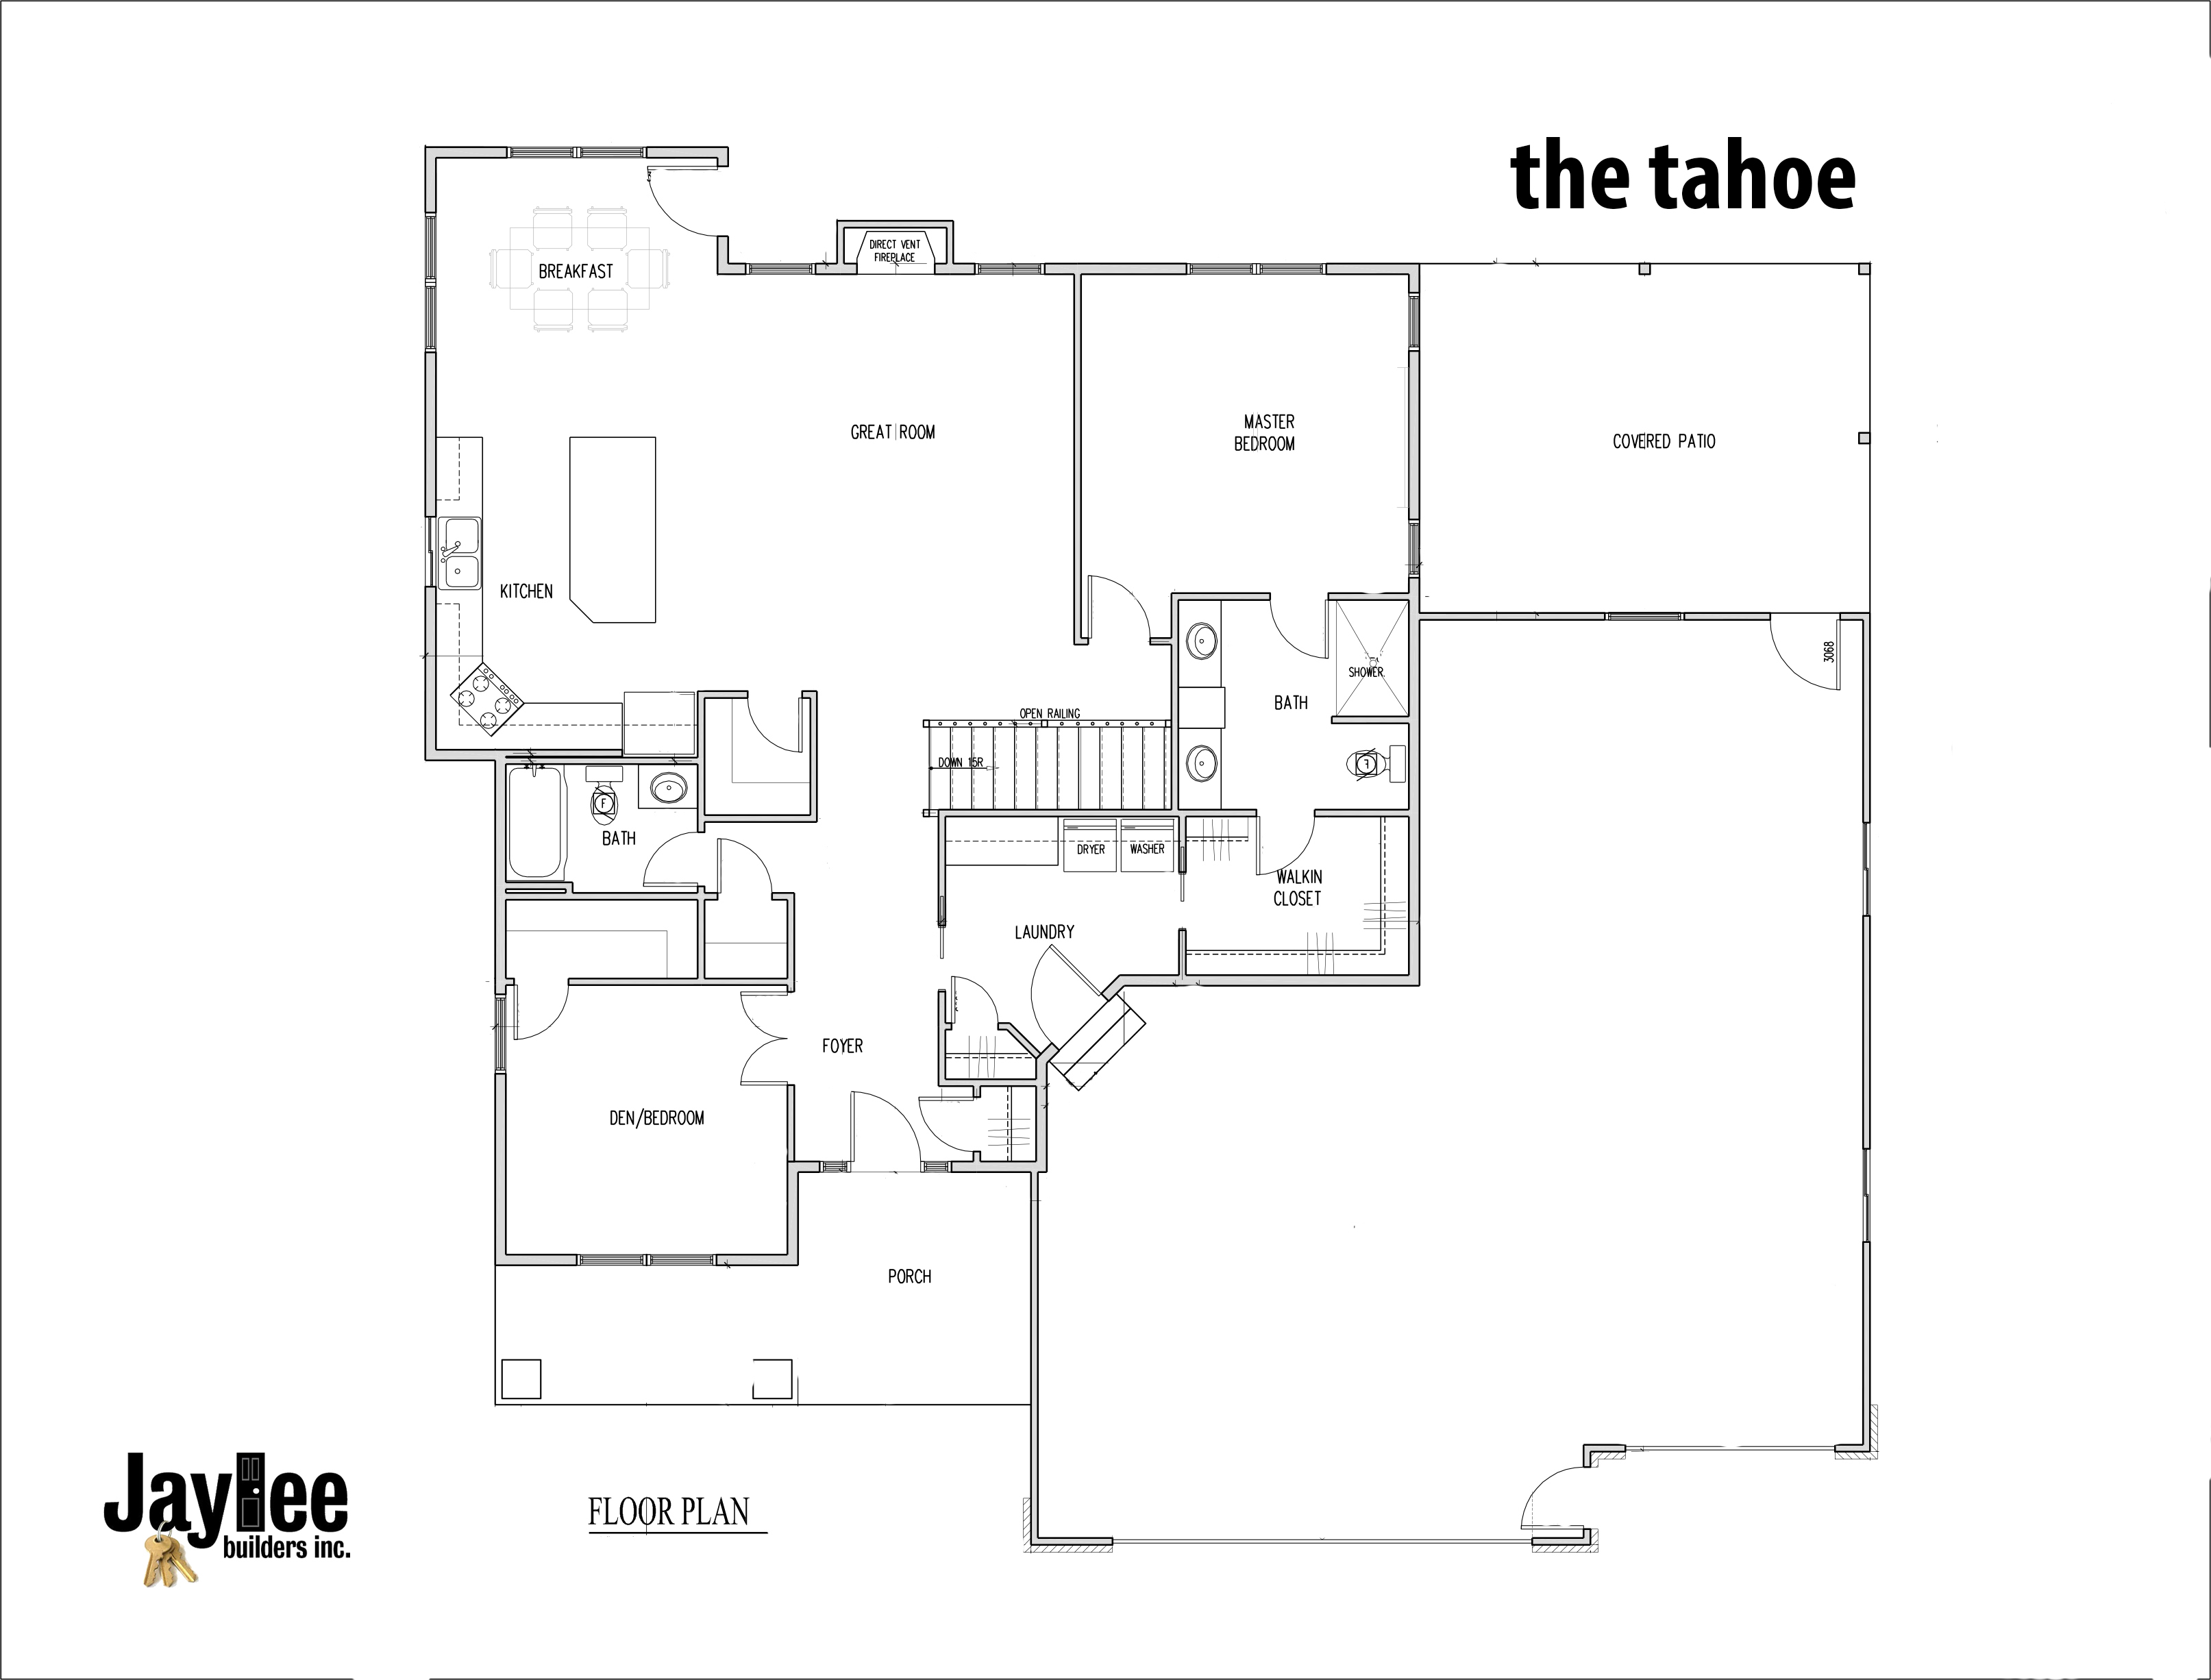 thetahoefloorplan-700x531 Pa Tahoe House Plan on virginia town house, forester house, tommy hilfiger's house, denali house, century house, villager house, cheyenne house, pilot house, ranger house, airstream house, casita house, escape house, classic house, lake house, nova house, sequoia house, patriot house, kalahari house, aristocrat house,